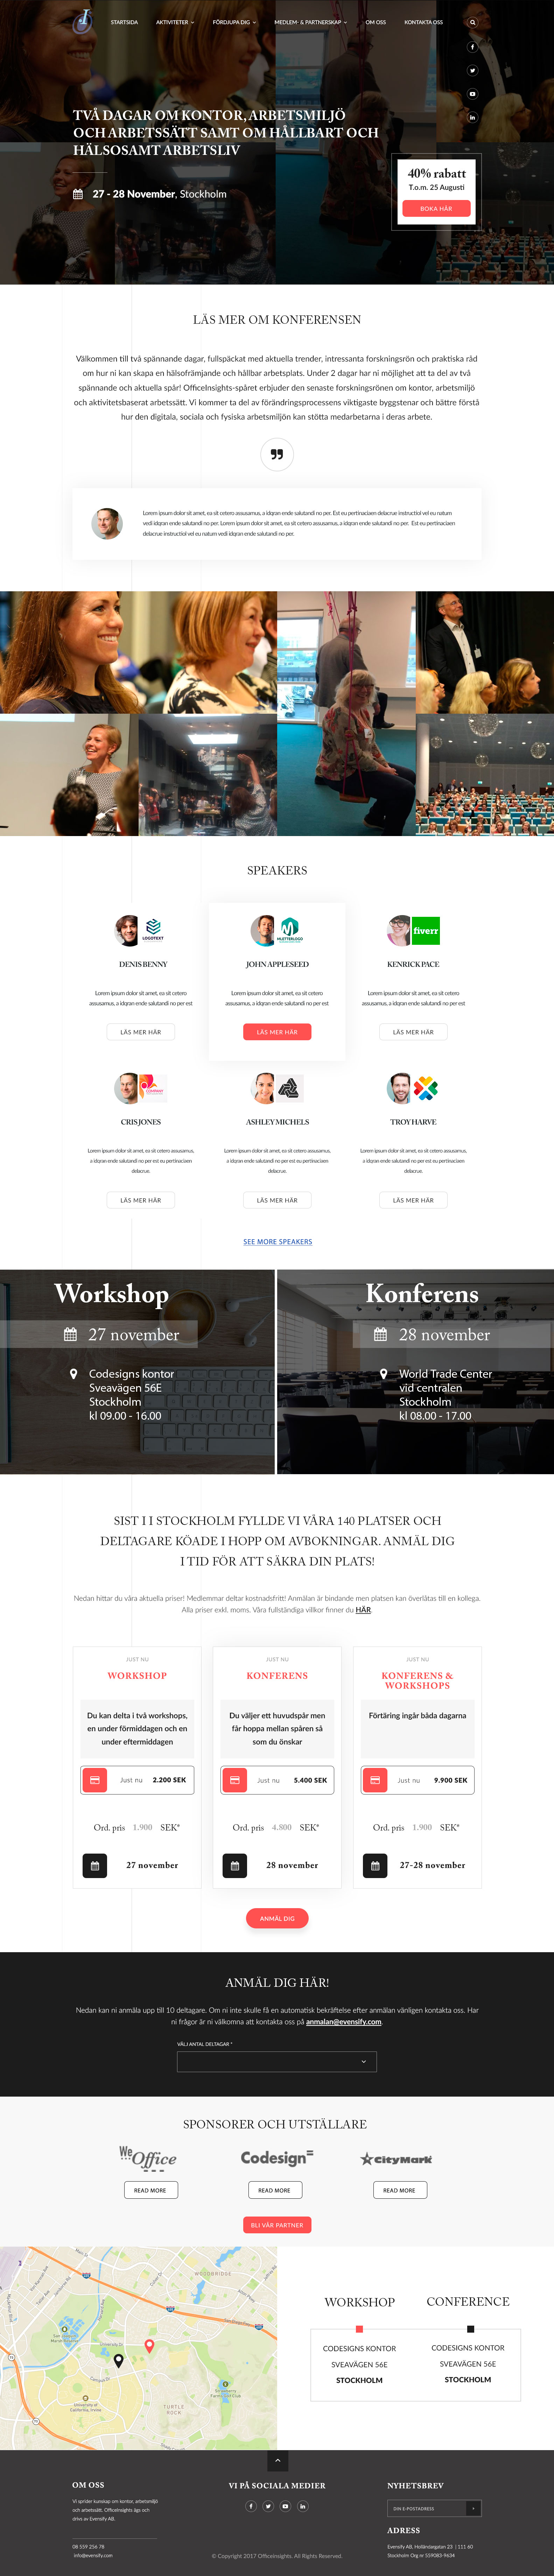 Office Insights - Conference project - Web-development - Merehead Development